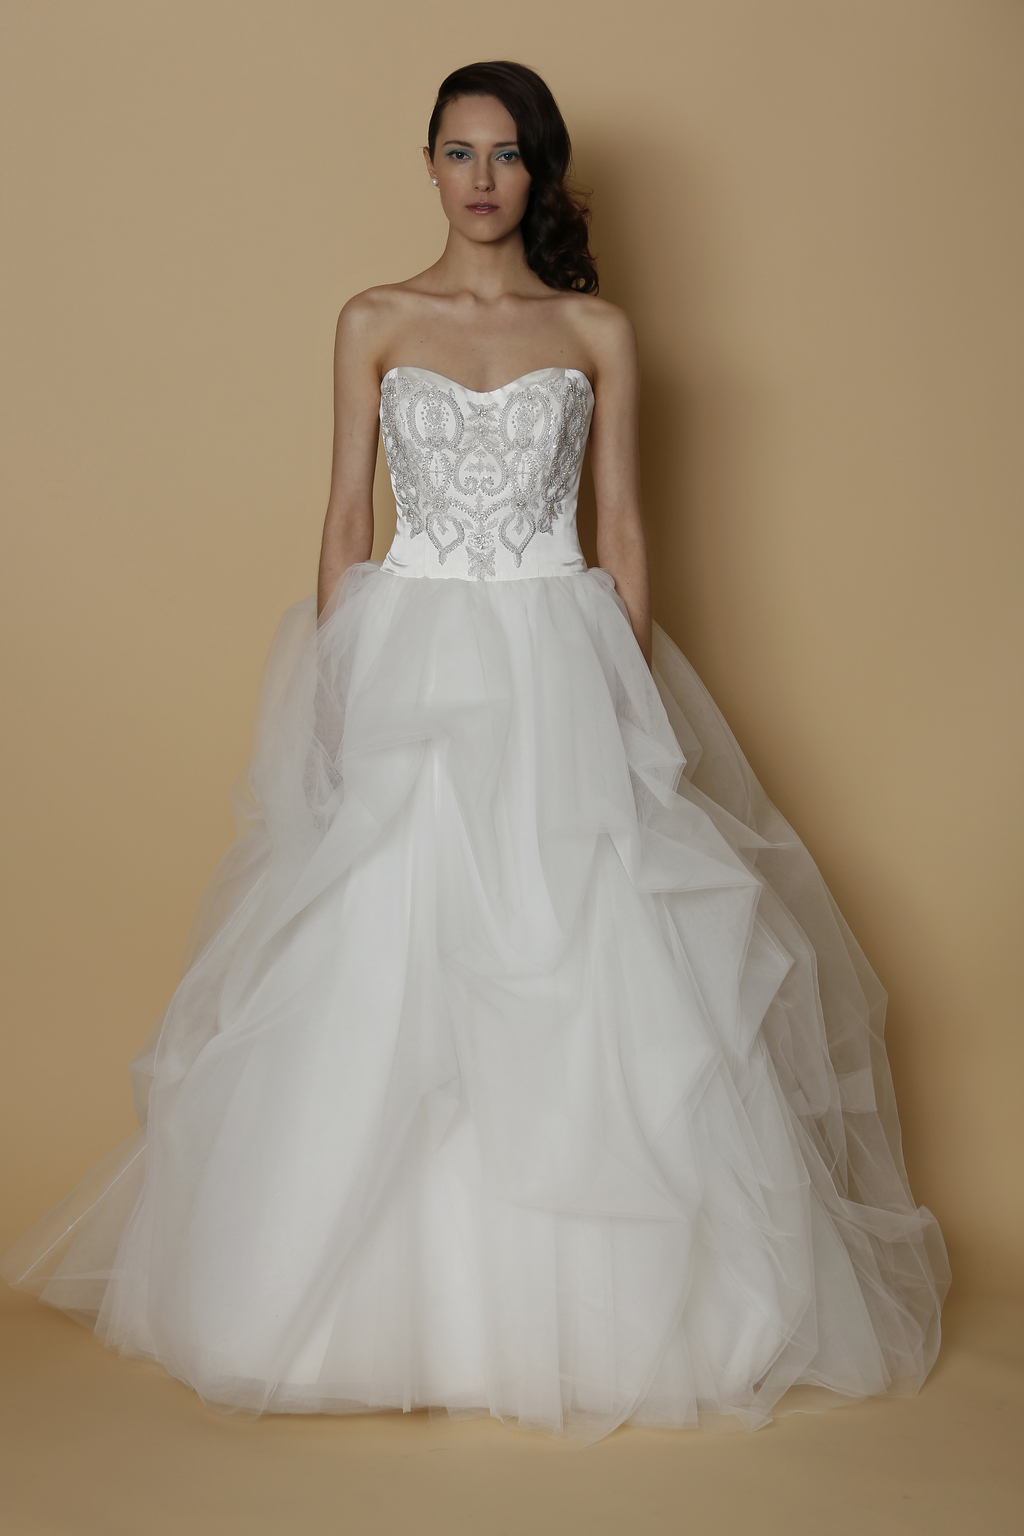 Alyne spring summer 2014 wedding dress roses for Wedding dresses with roses on them